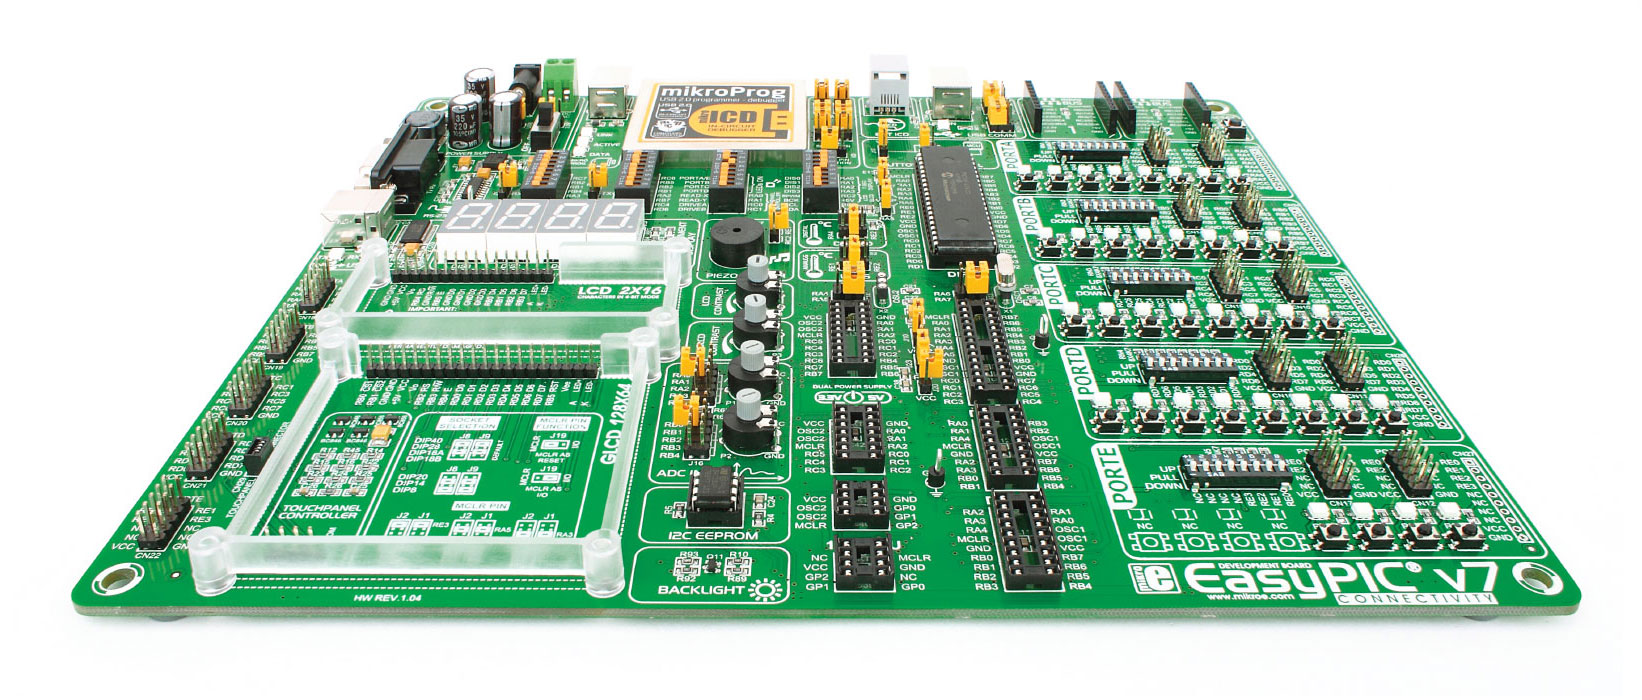 Easy Microcontroller Development Boards